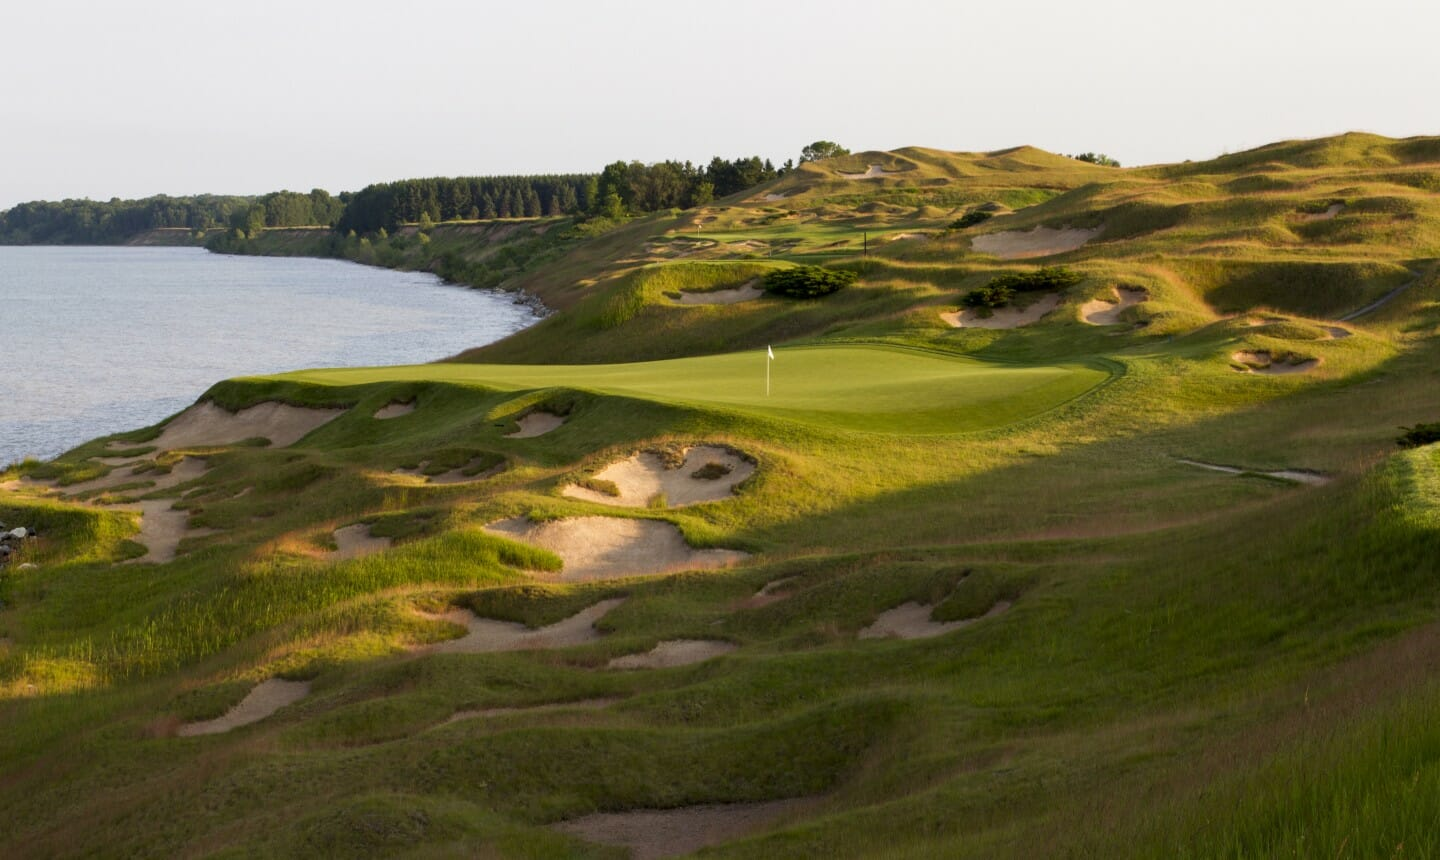 Image of the approach to the 3rd green on The Straits Golf Course, Whistling Straits, Destination Kohler, Sheboygan, Wisconsin, USA